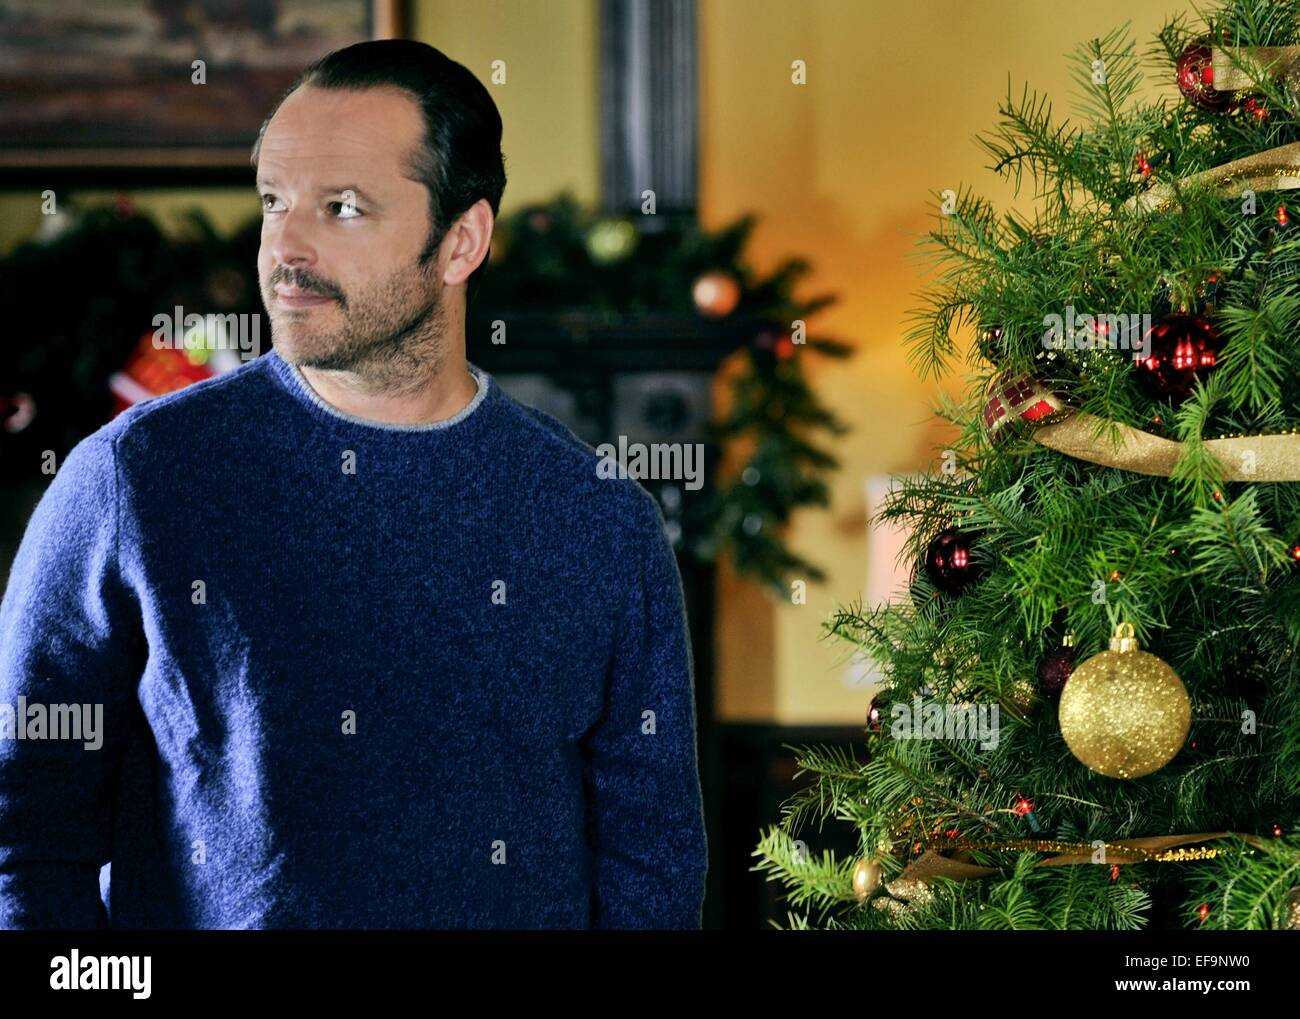 Trading Christmas.Gil Bellows Trading Christmas 2011 Stock Photo 78276044